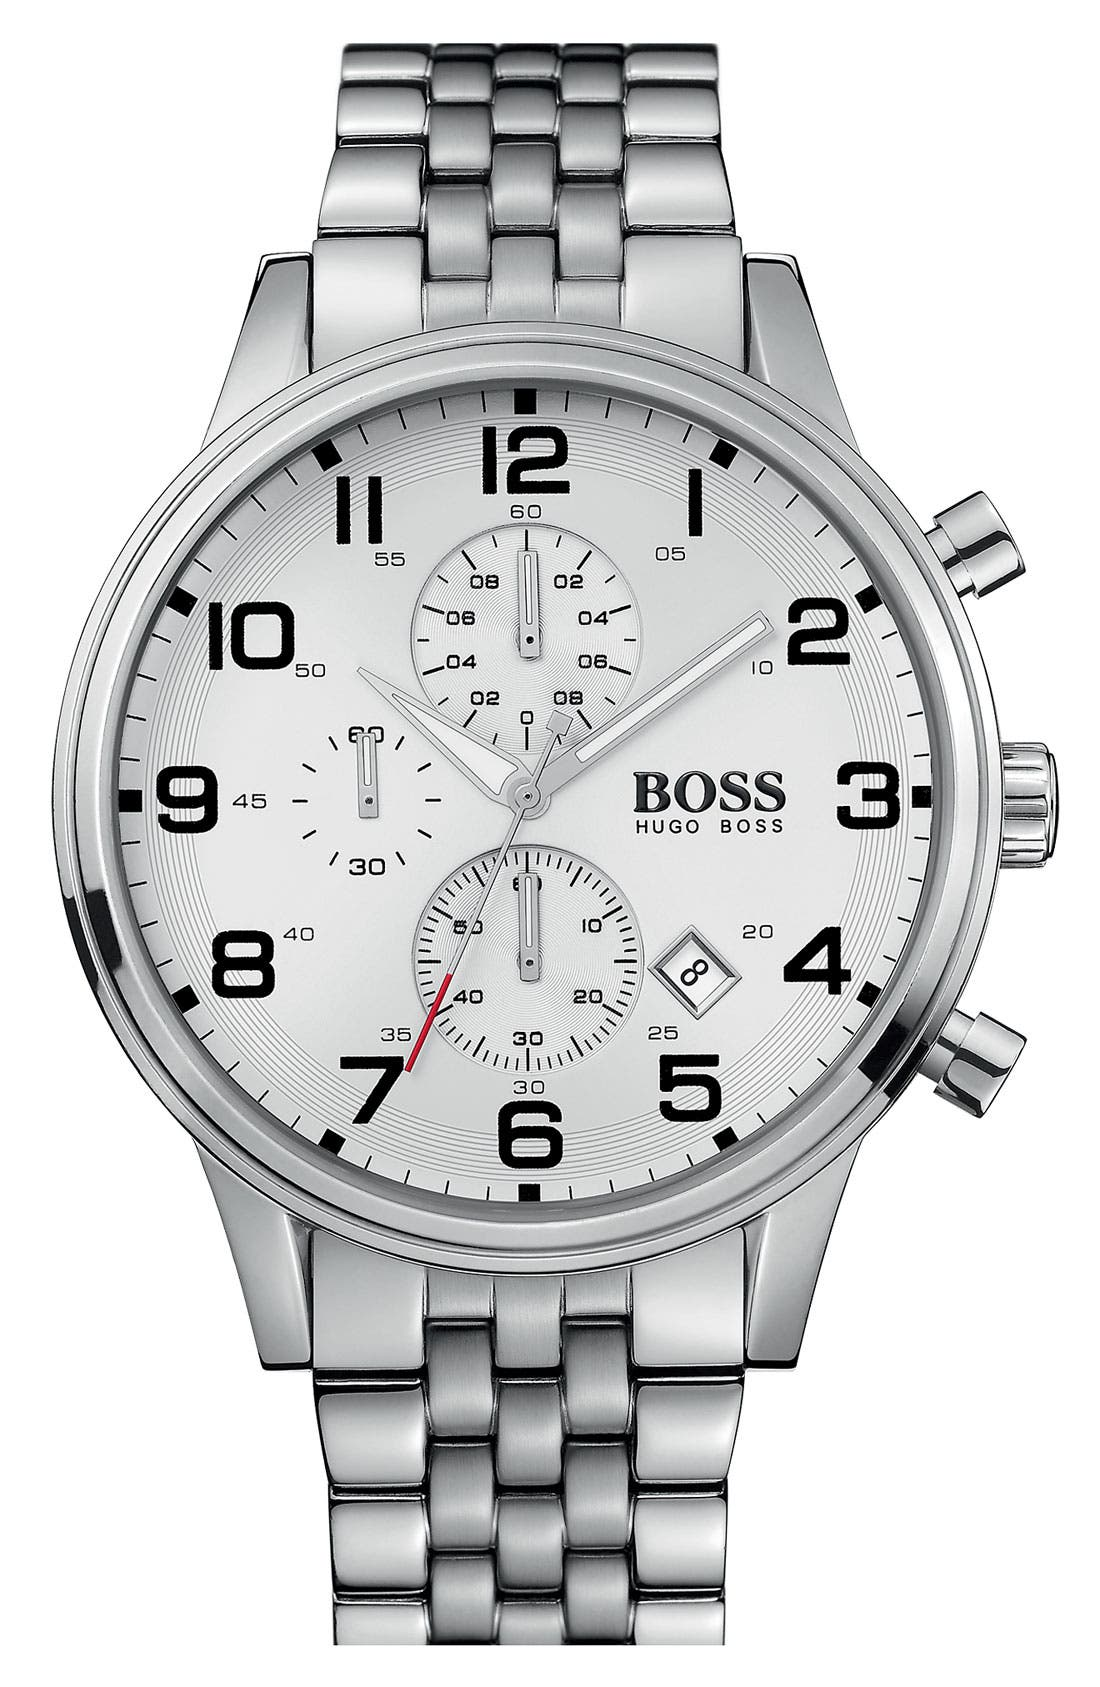 Alternate Image 1 Selected - BOSS HUGO BOSS Chronograph Stainless Steel Bracelet Watch, 44mm